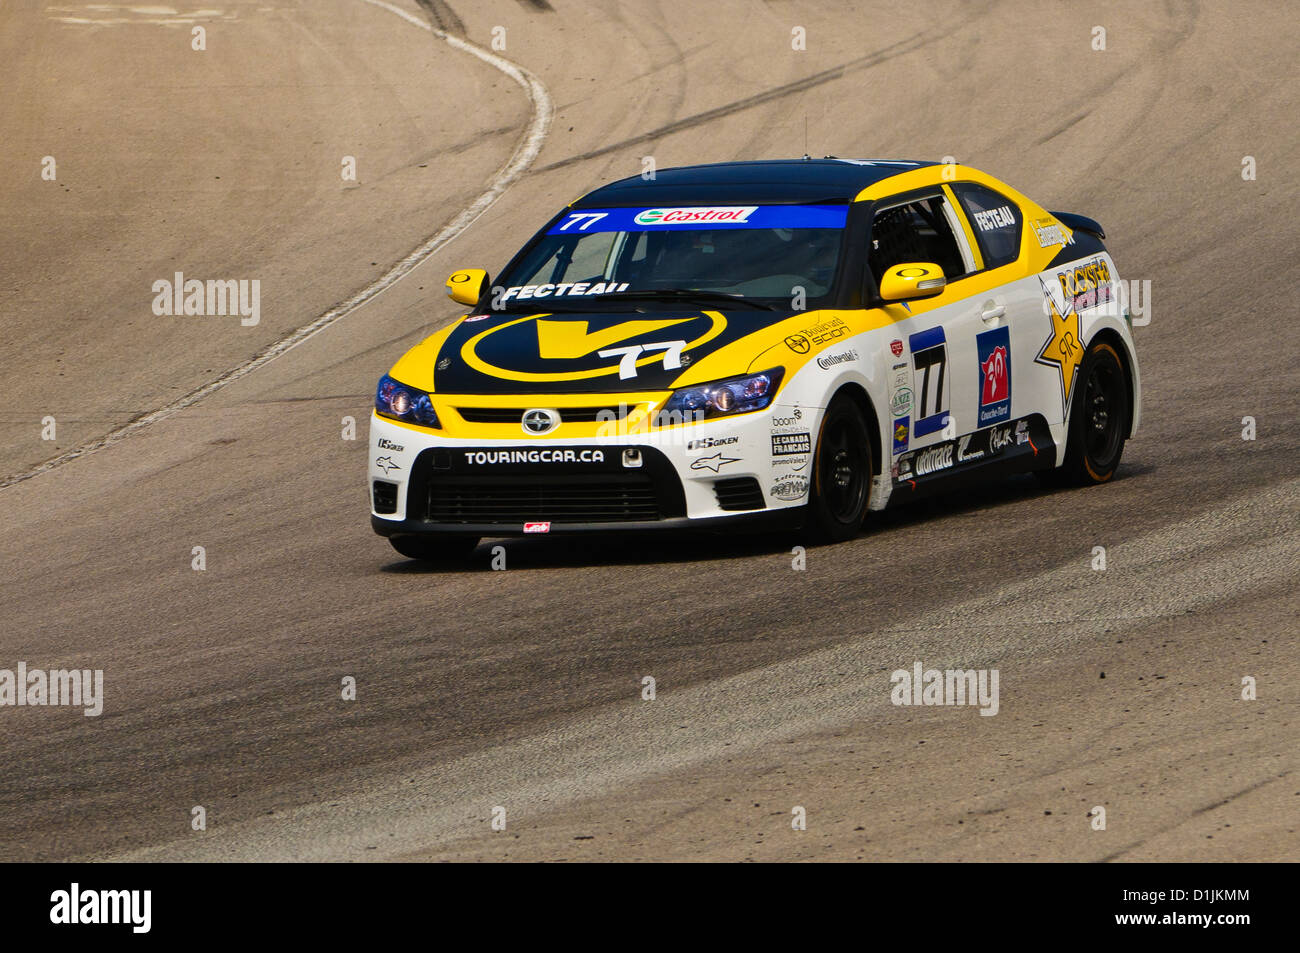 A Scion tC competes in the  CTCC Canadian Touring Car Championship at the 2011 Mobile-1 Grand Prix Mosport Stock Photo